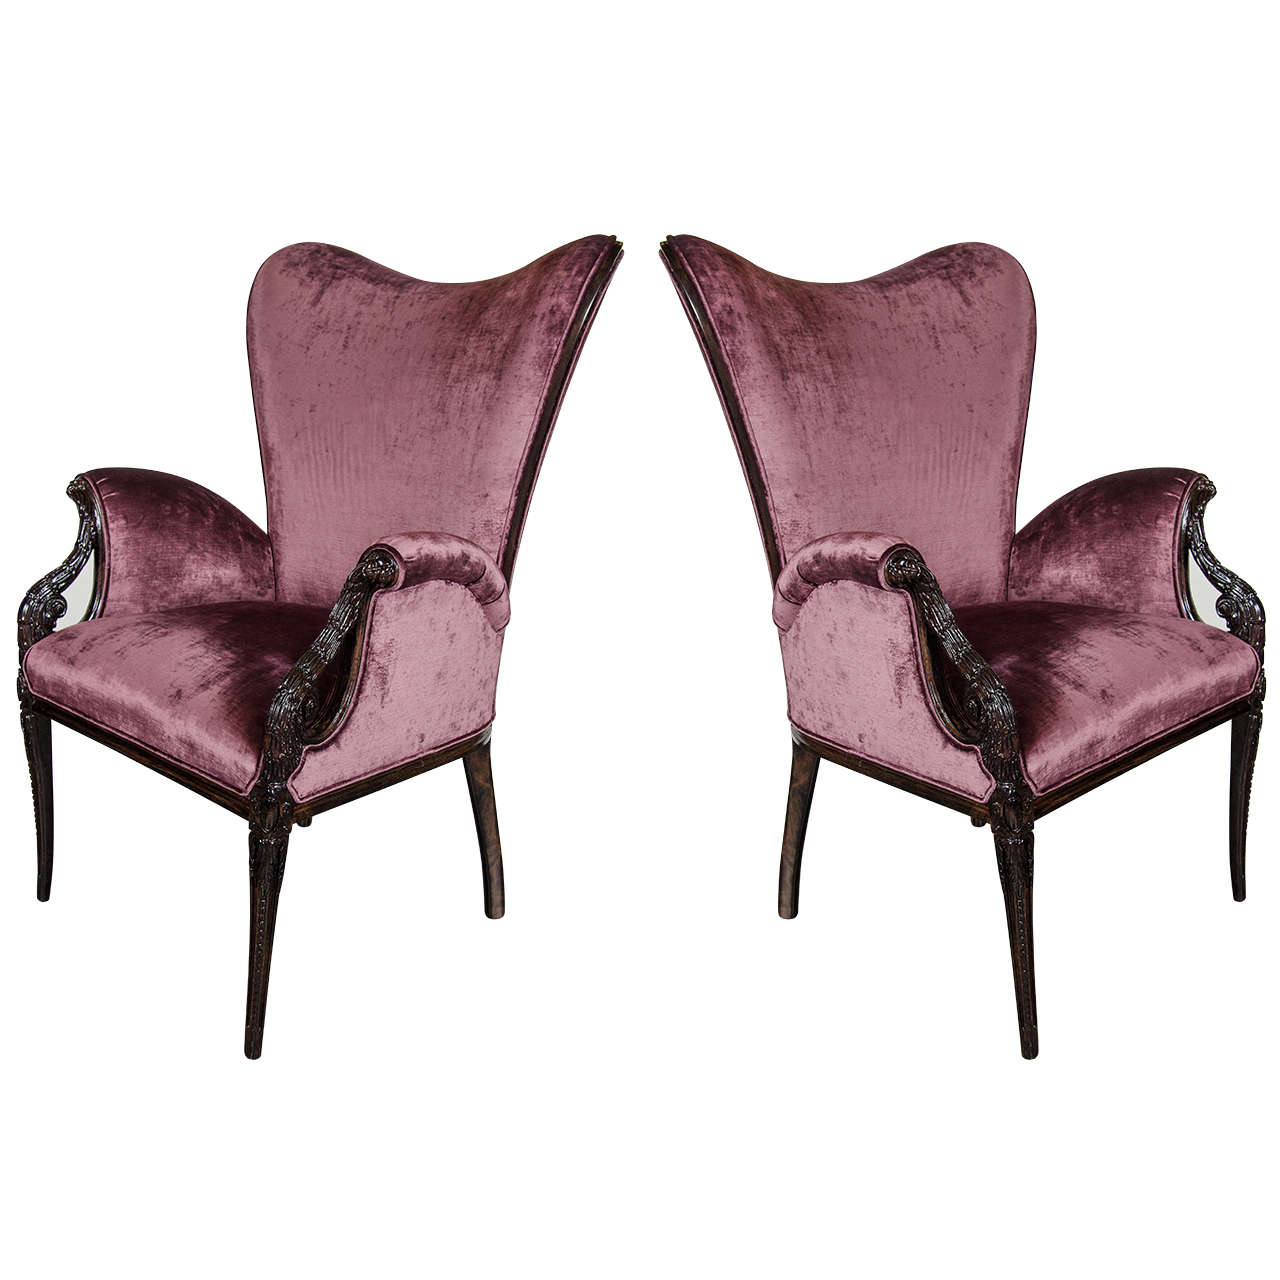 Pair of 1940s Wingback Chairs in Smoked Amethyst Velvet by Grosfeld House